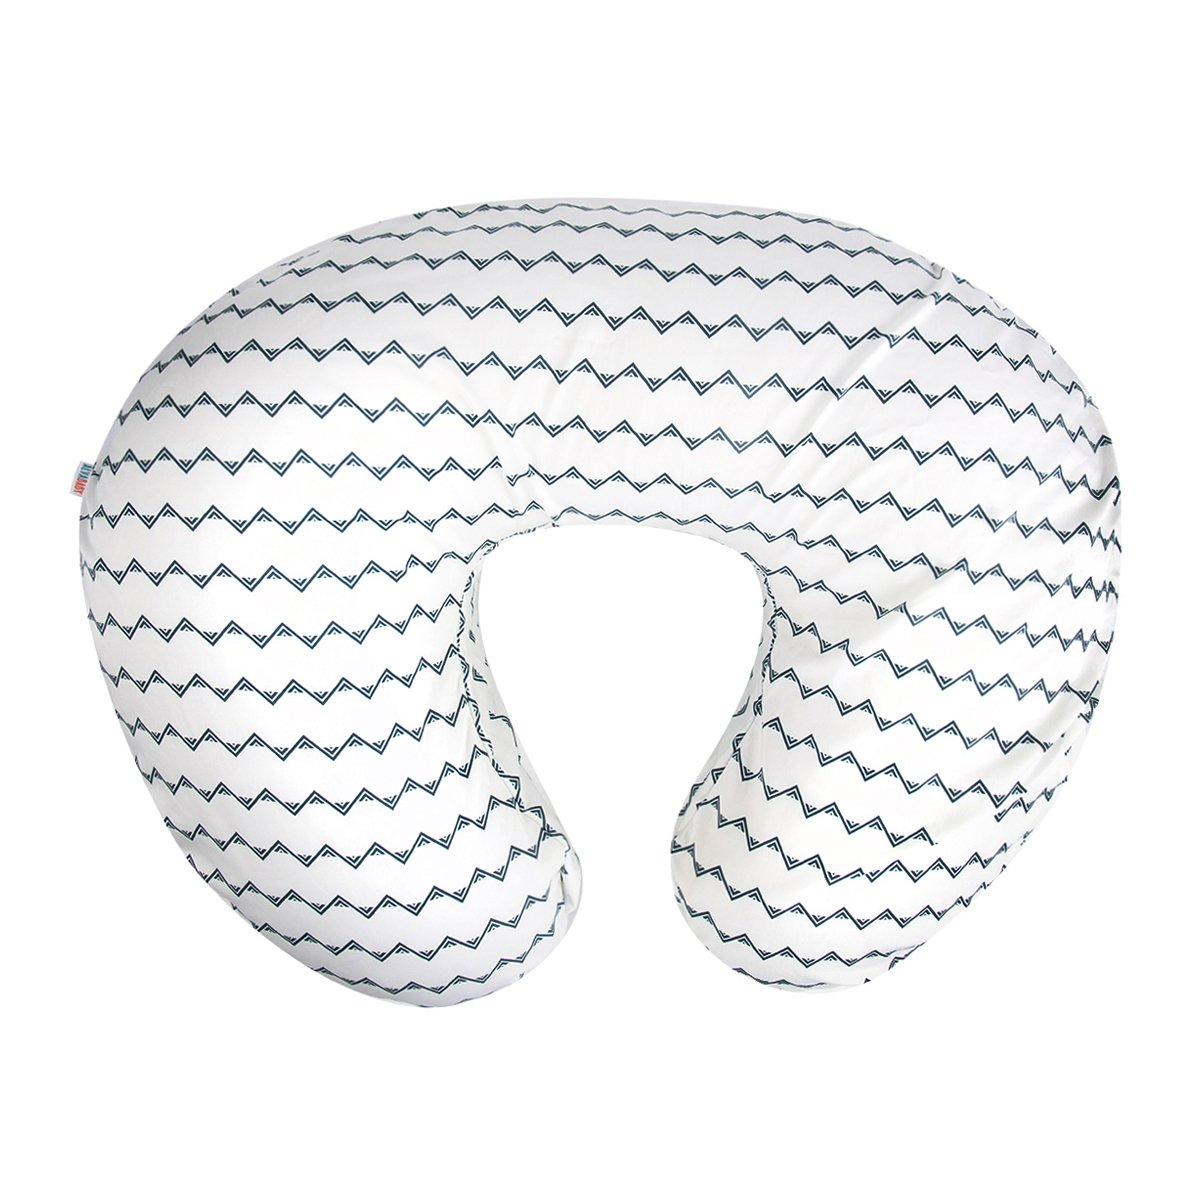 ALVABABY Nursing Pillow Cover Slipcover,100% Organic Cotton,Soft and Comfortable,Maternity Breastfeeding Newborn Infant Feeding Cushion Cover, ZT02